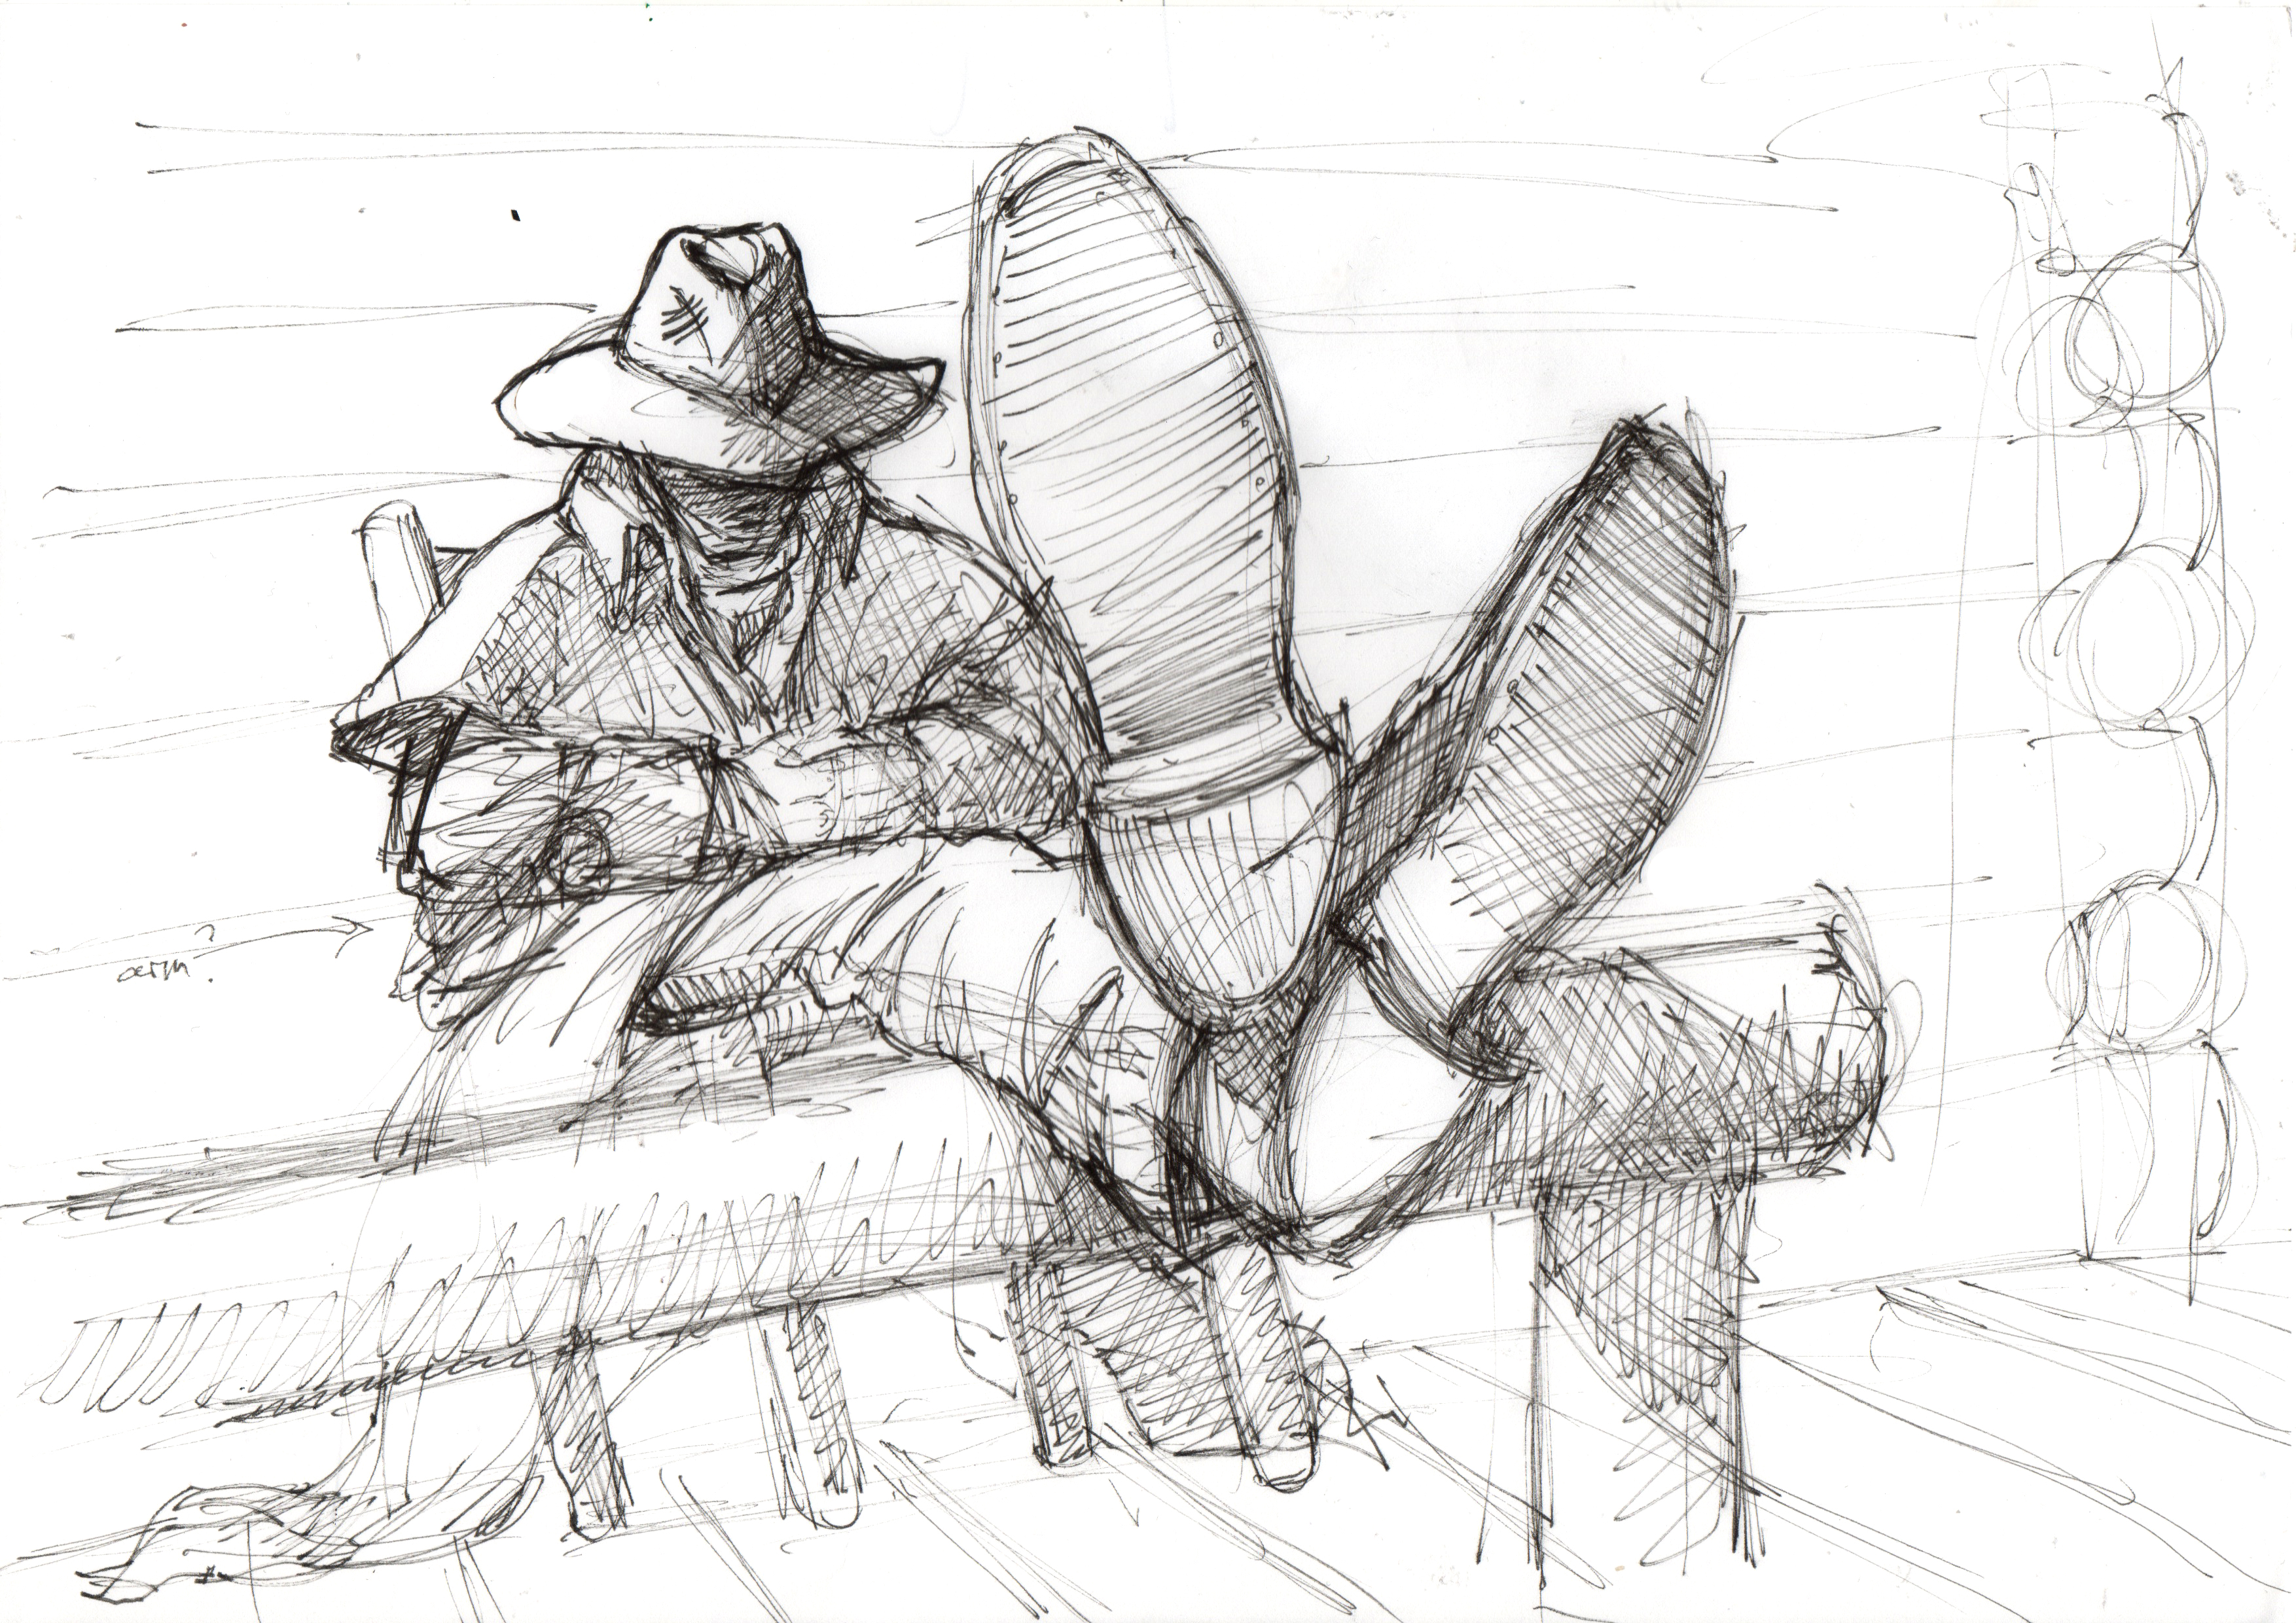 Rider: Feet up sketch